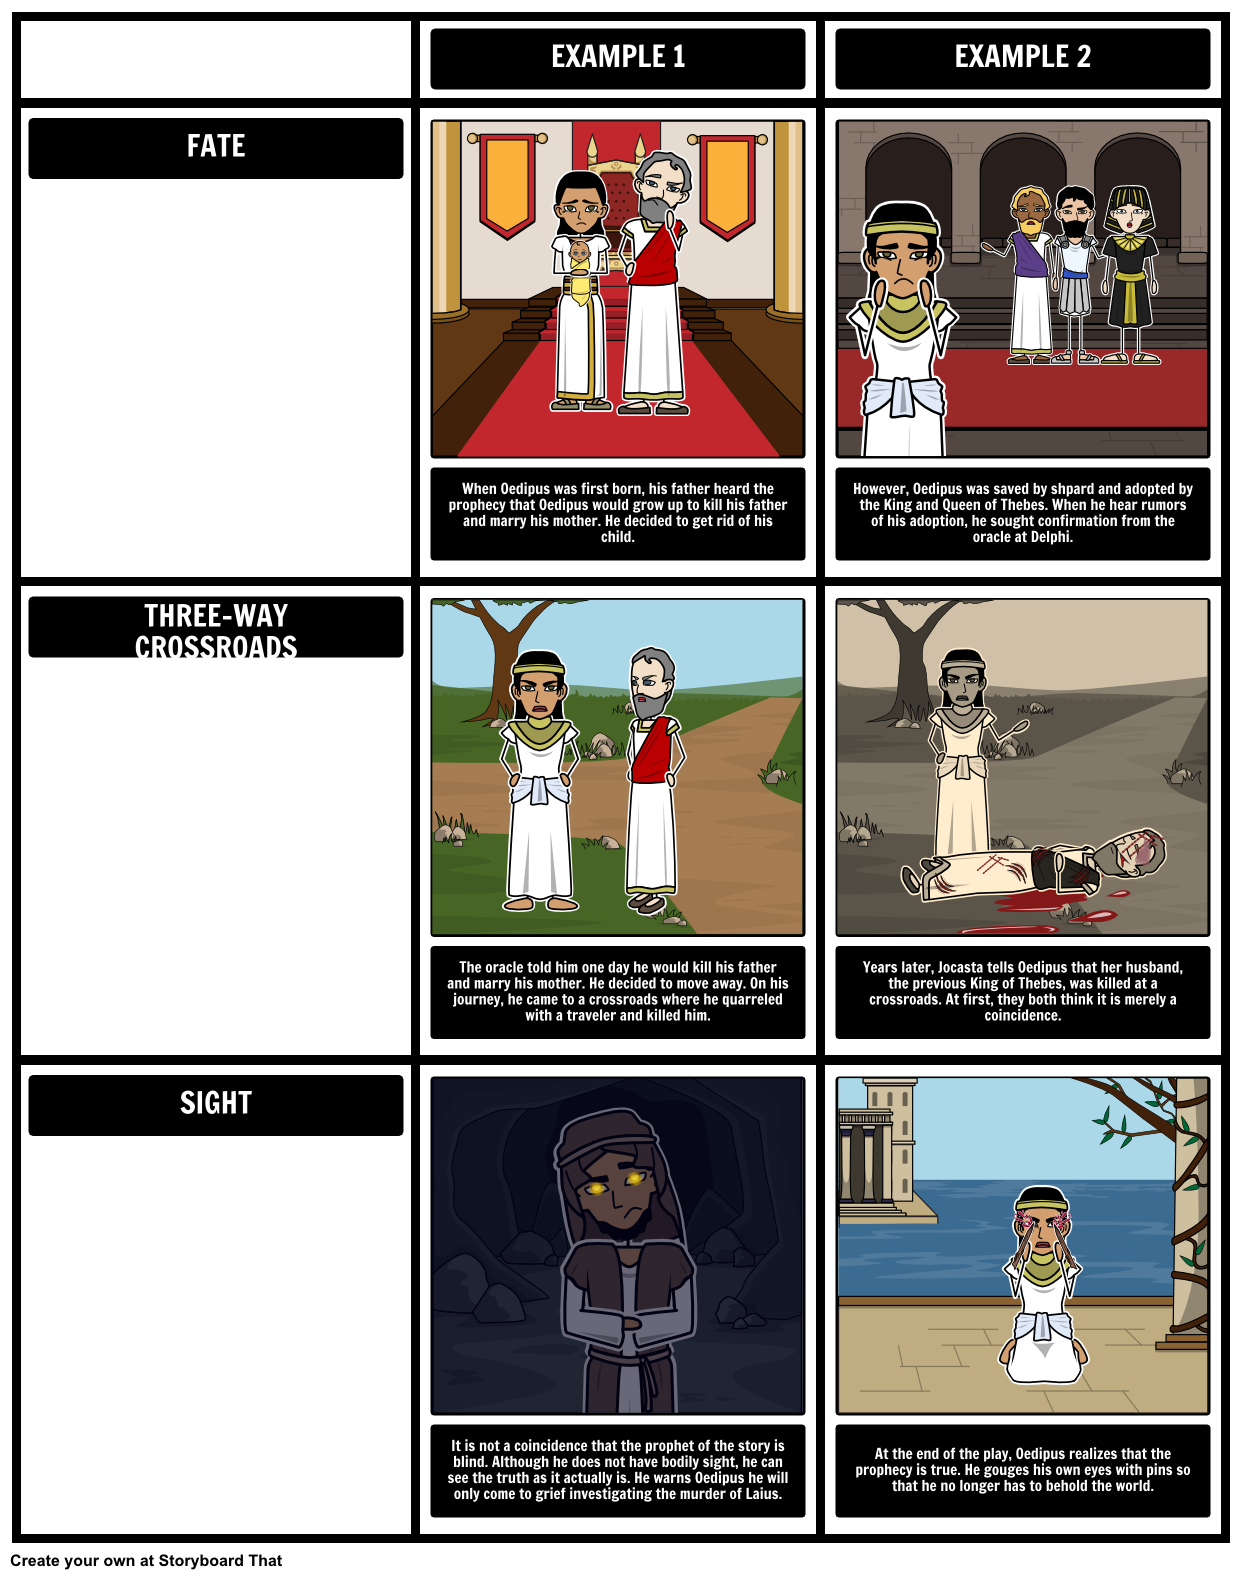 oedipus rex themes check out our key themes storyboard for oedipus rex themes check out our key themes storyboard for oedipus rex created